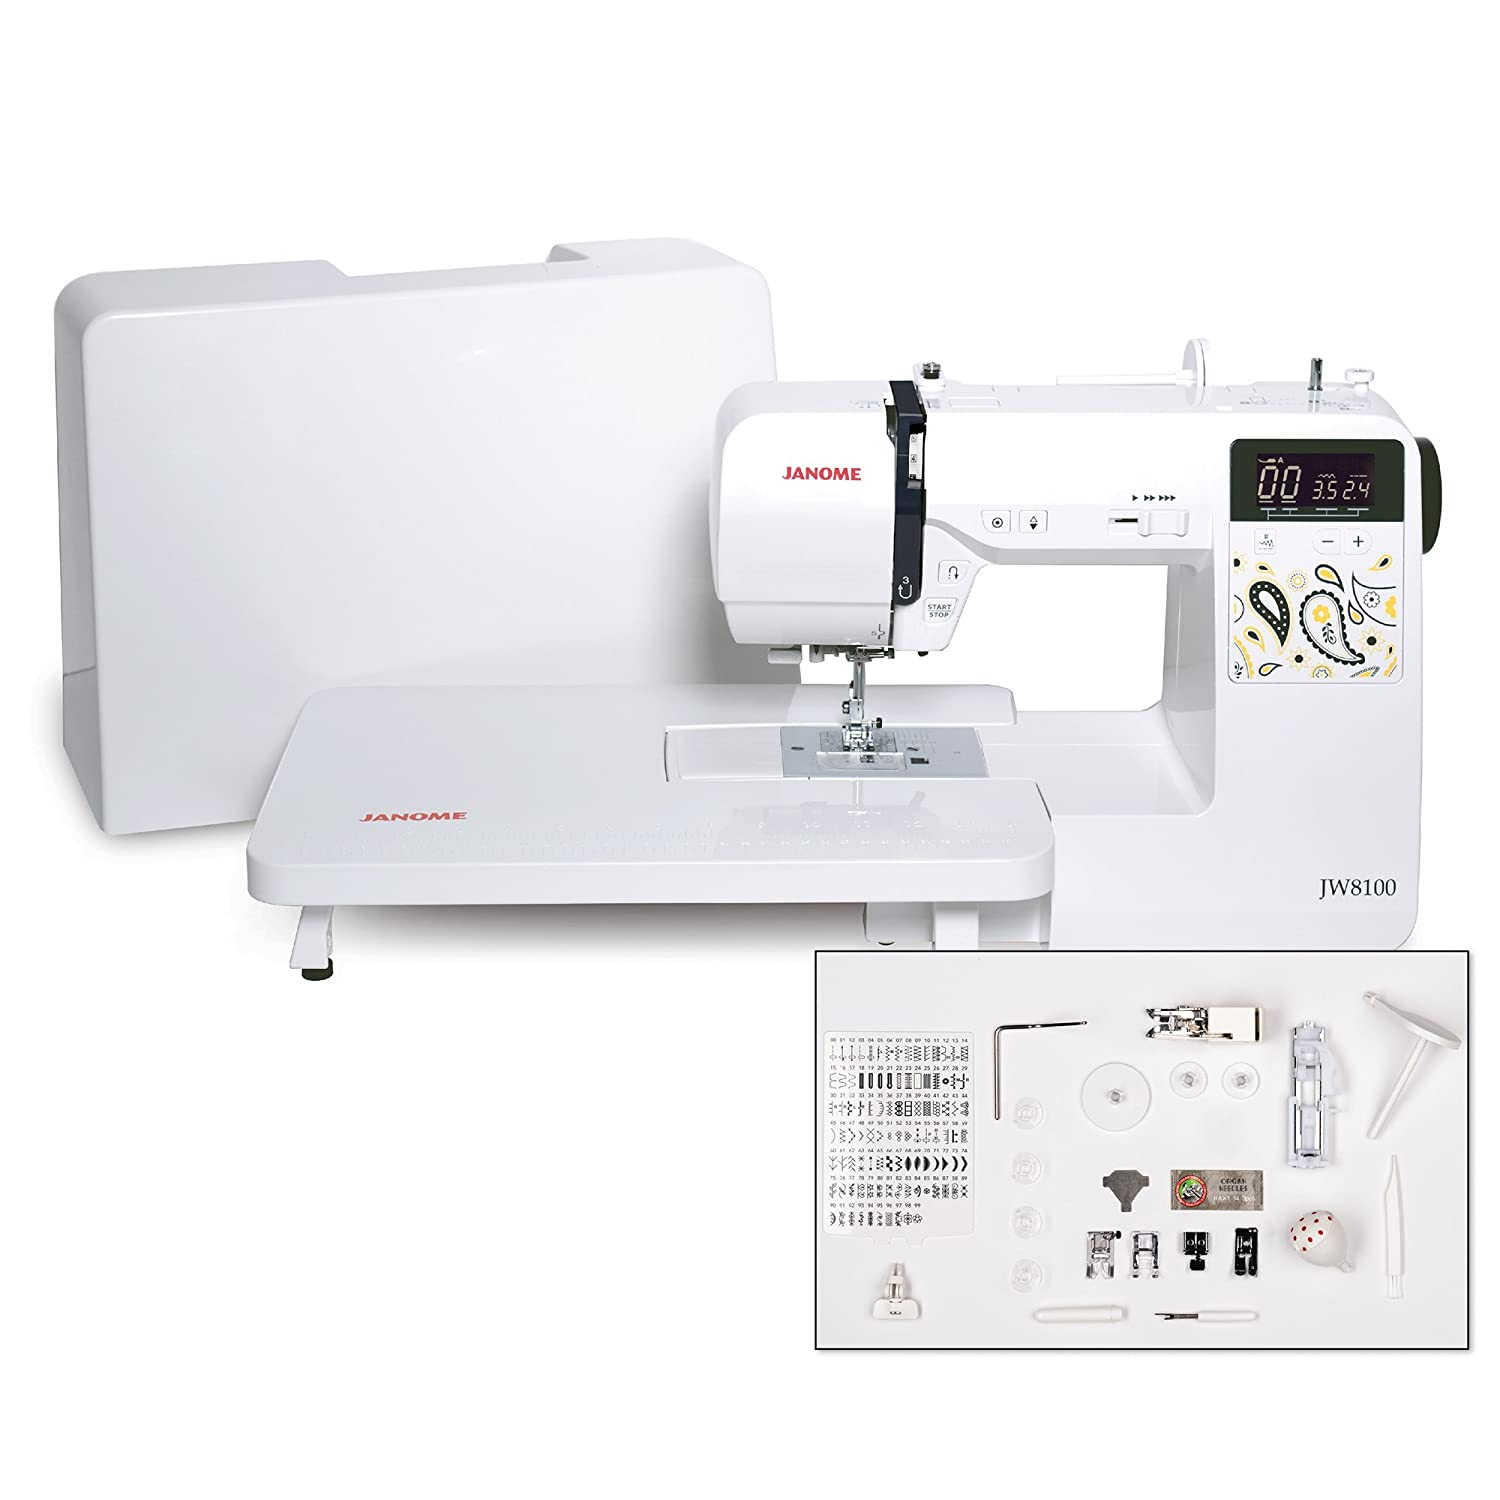 Janome Jw8100 Fully Featured Computerized Sewing Machine Pedal Wiring Diagram Kenmore With 100 Stitches 7 Buttonholes Hard Cover Extension Table And 22 Accessories